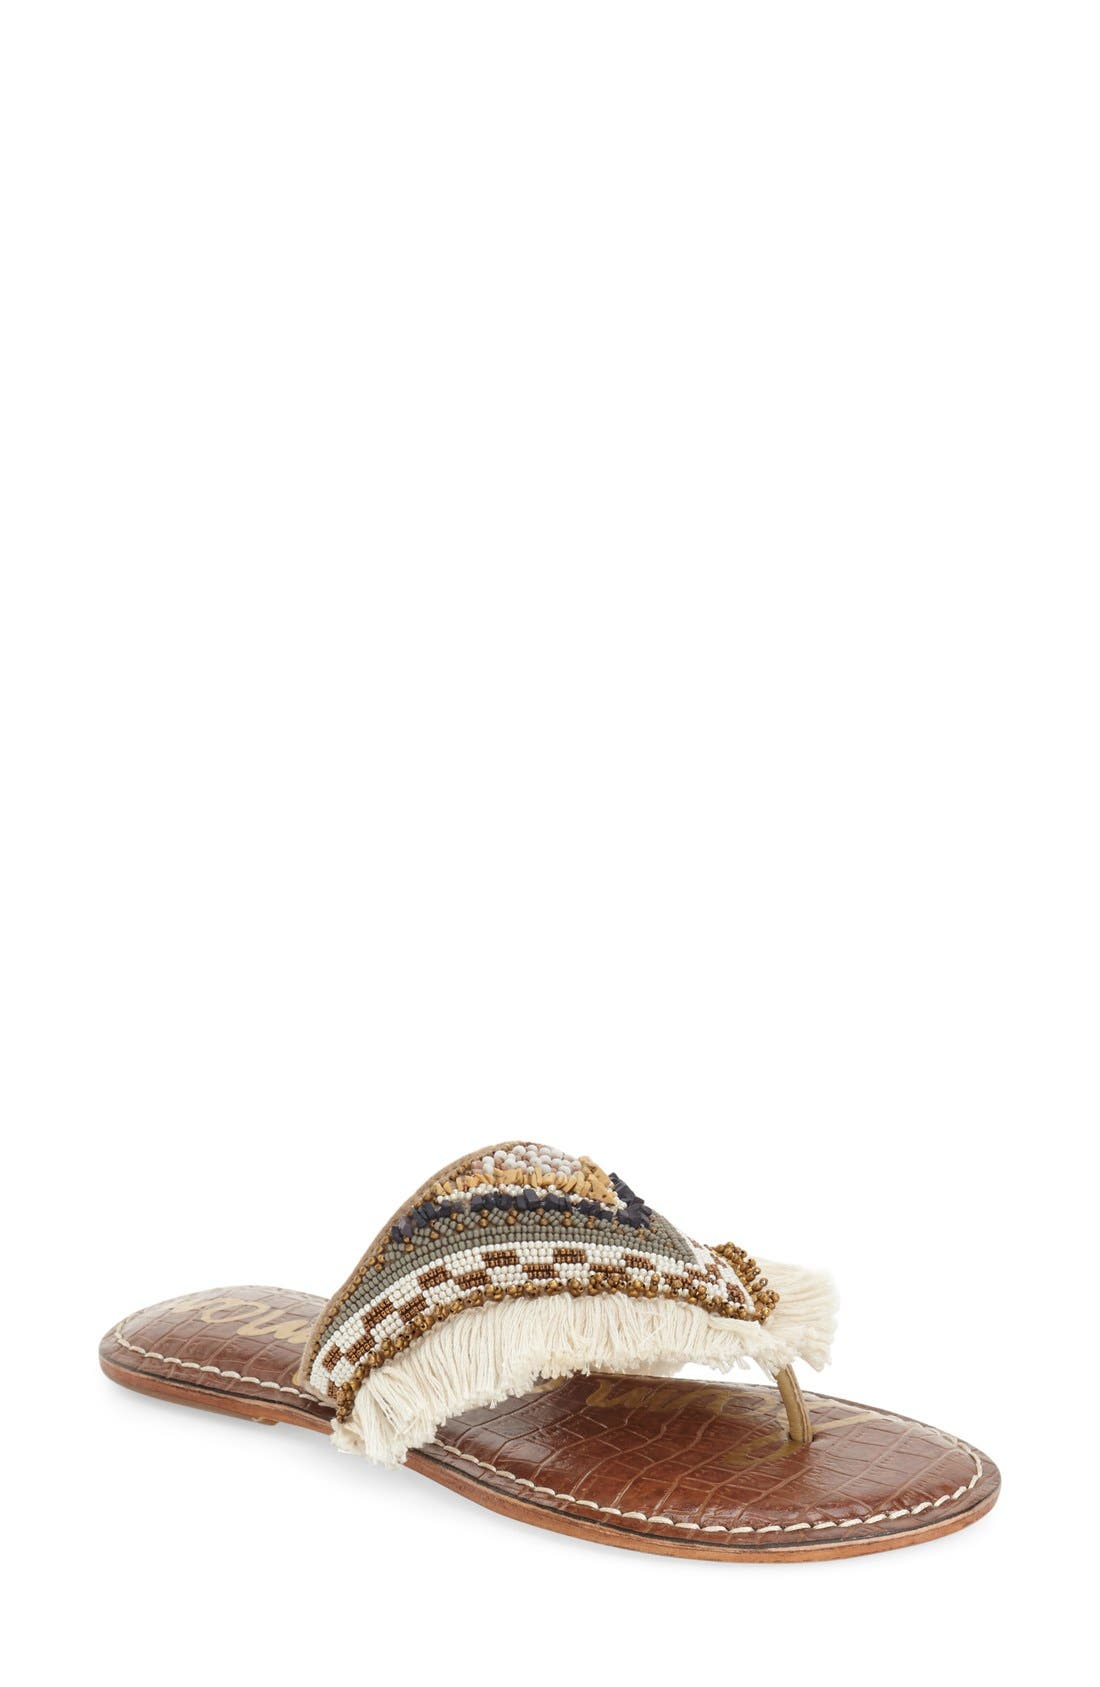 Alternate Image 1 Selected - Sam Edelman 'Kennedy' Beaded Sandal (Women)